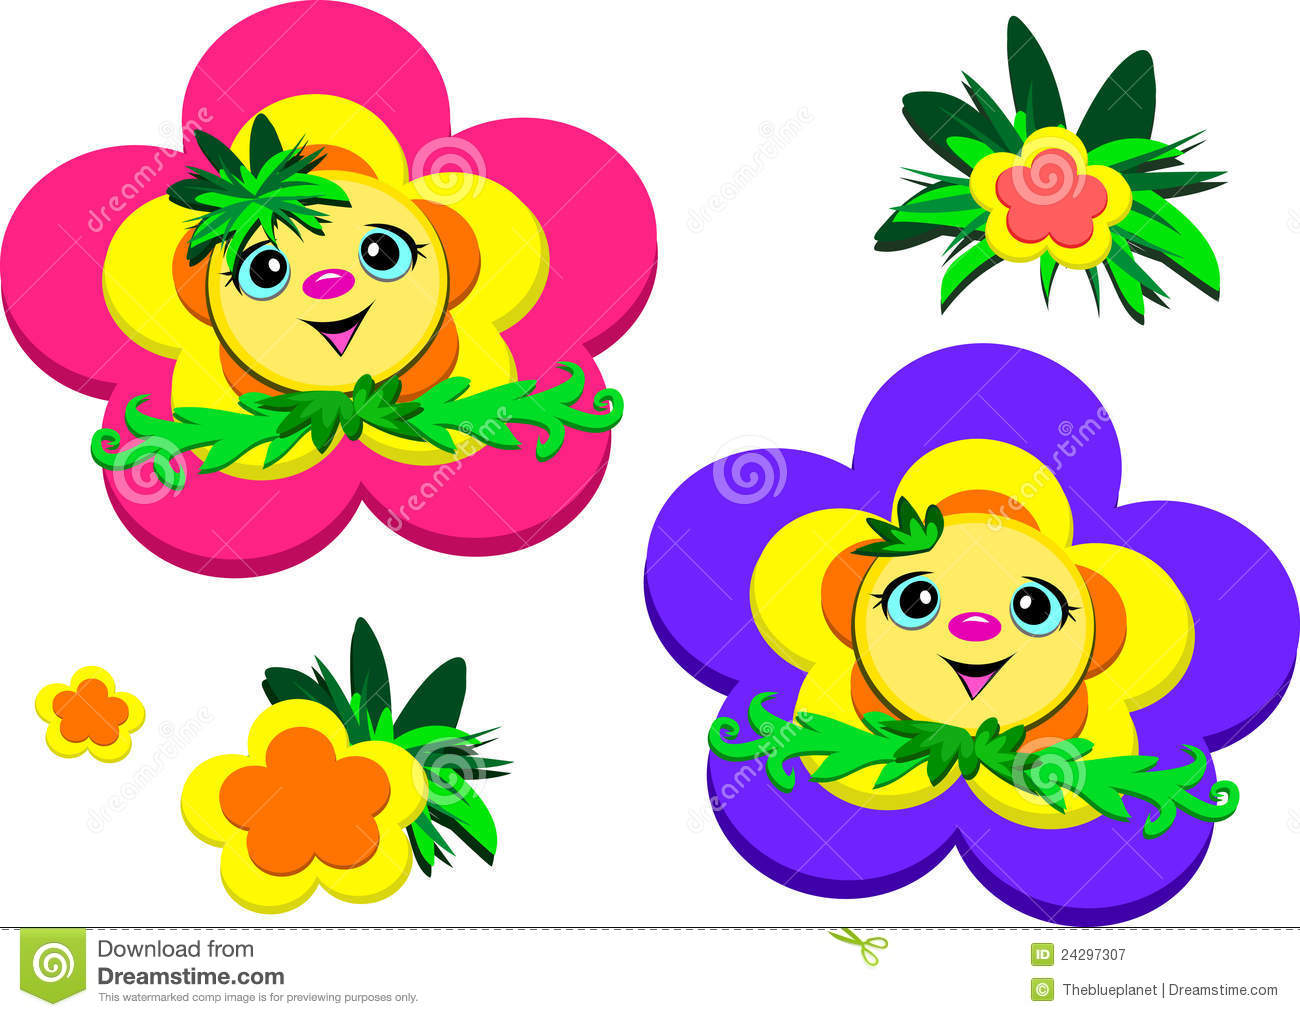 Flowers with faces clipart 7 » Clipart Station.